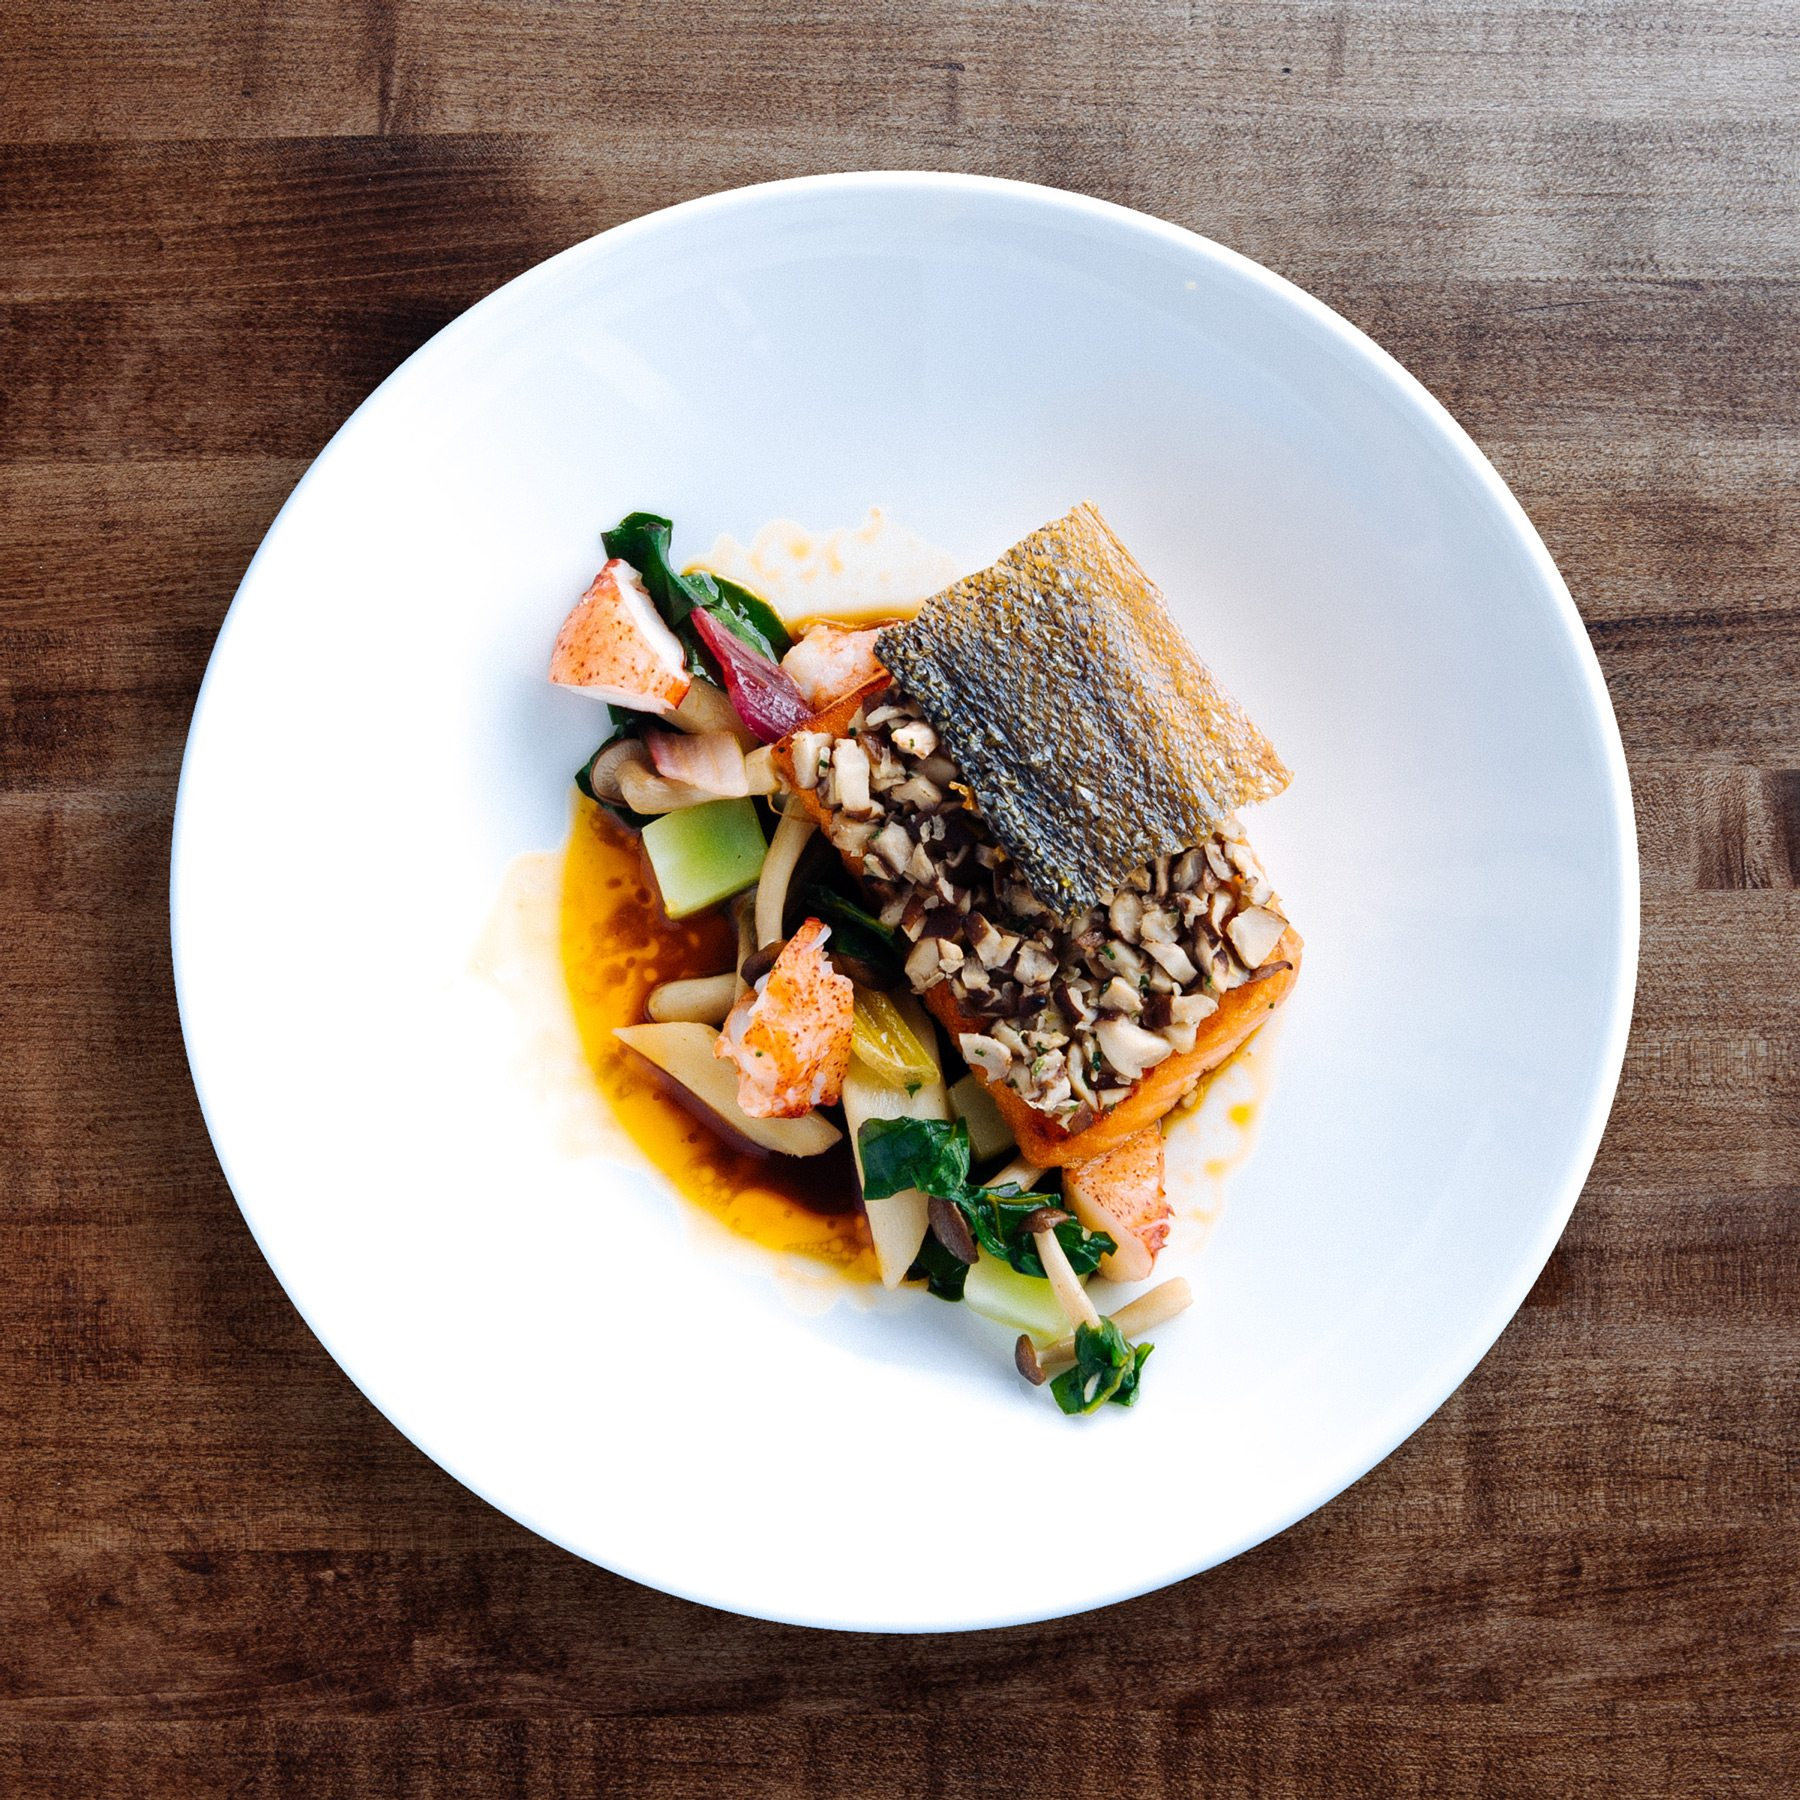 Mains on the seasonal menu include this organic salmon dish with mushroom duxelle and a honey lobster broth. Photo: Frazer Nagy of Transparent Kitchen